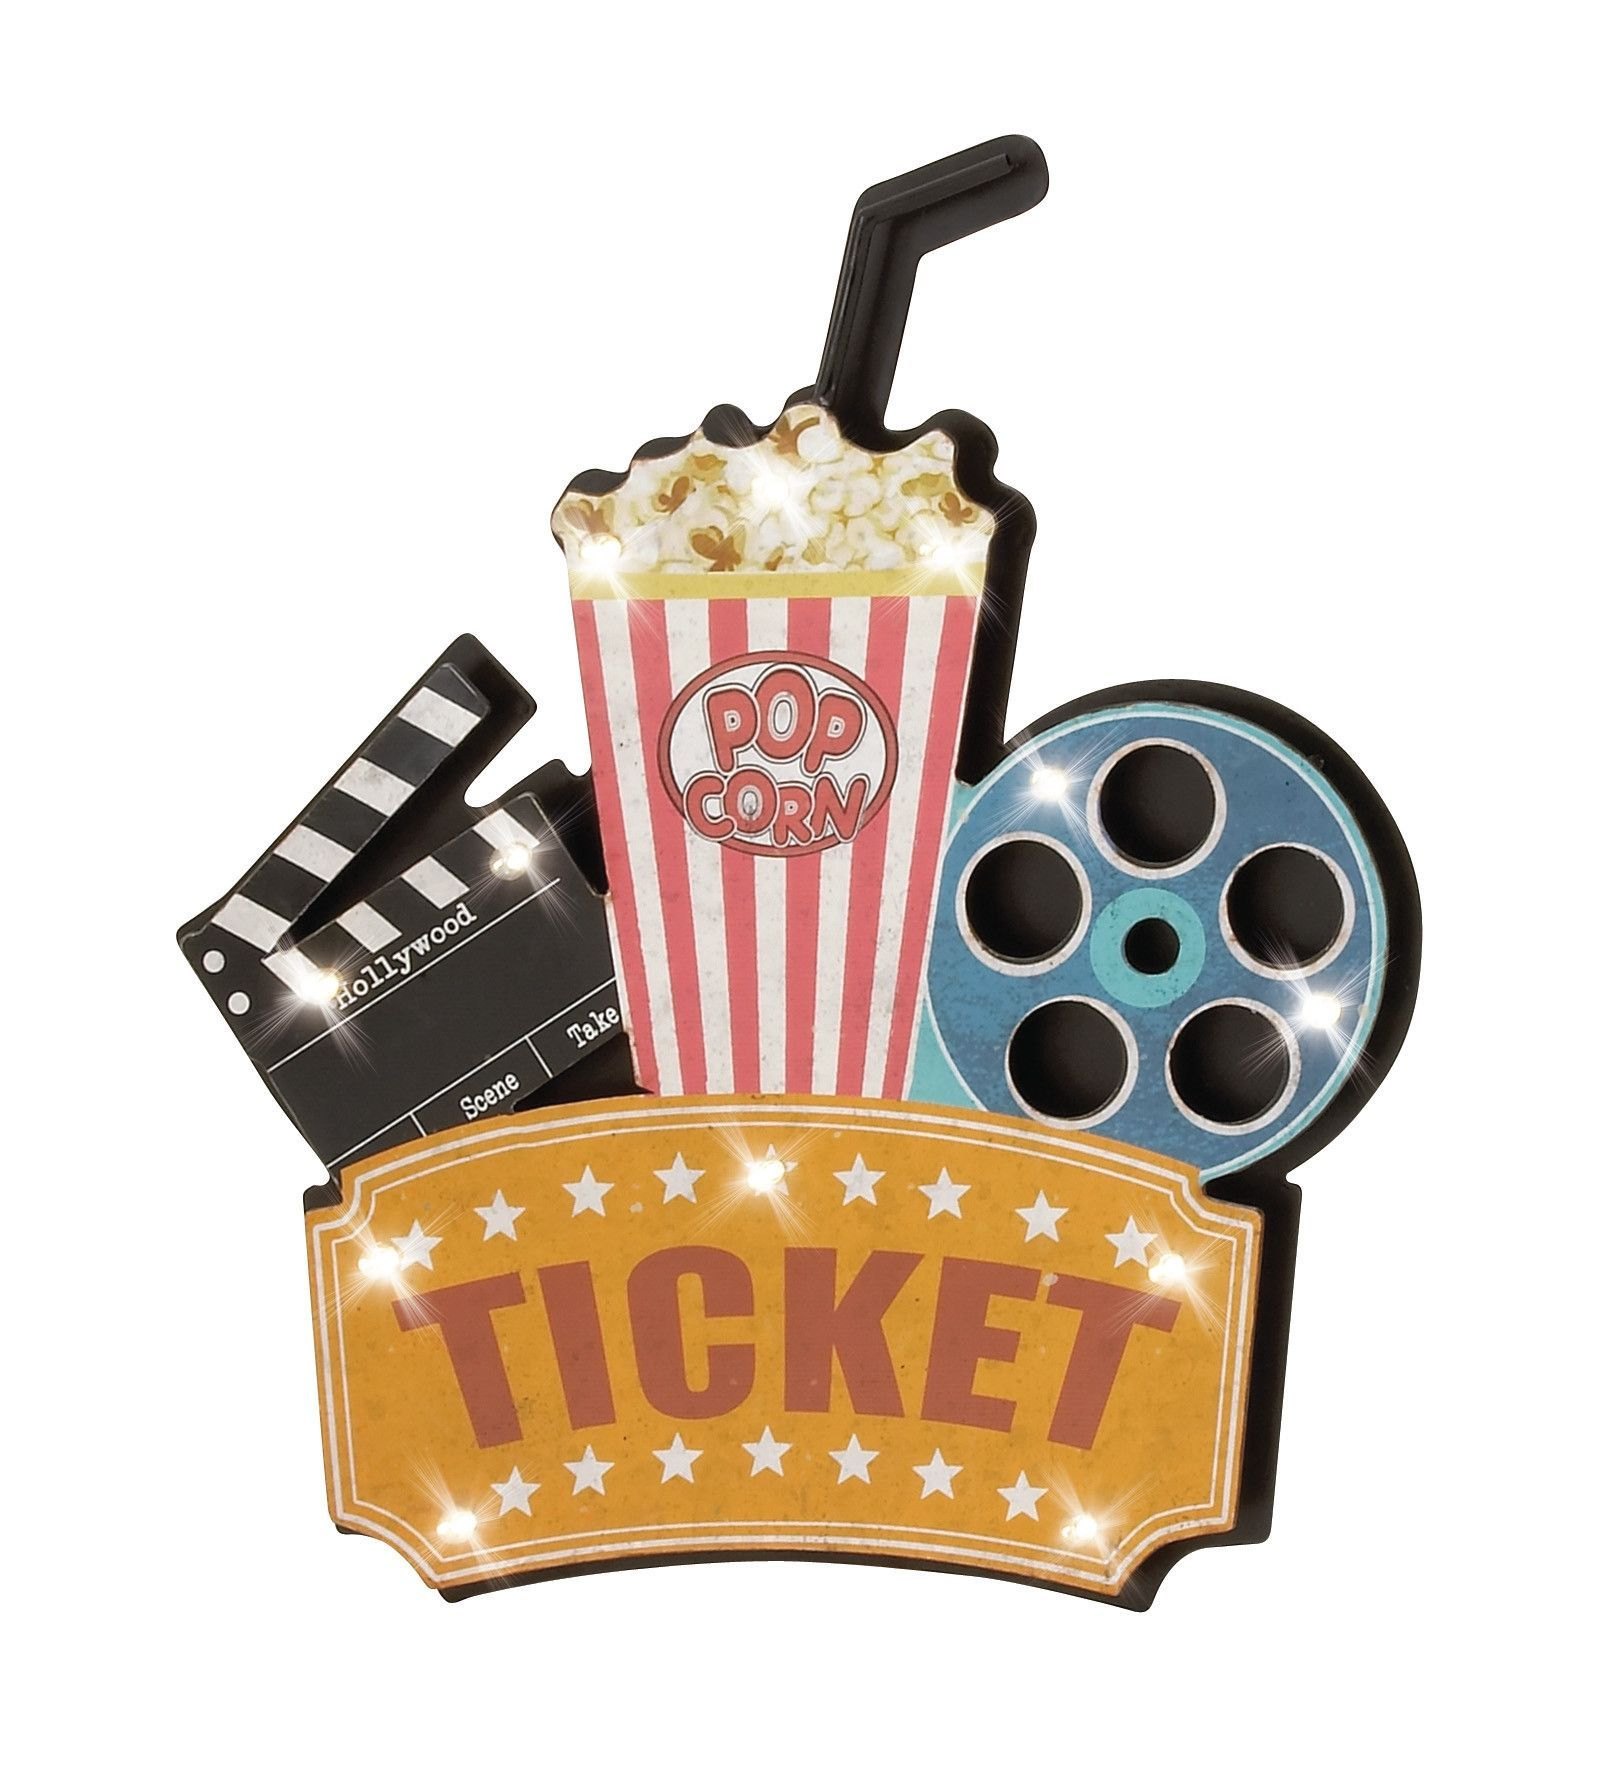 Light Up Theater: Ticket Movie Reel Clapperboard LED Light Wall Decor